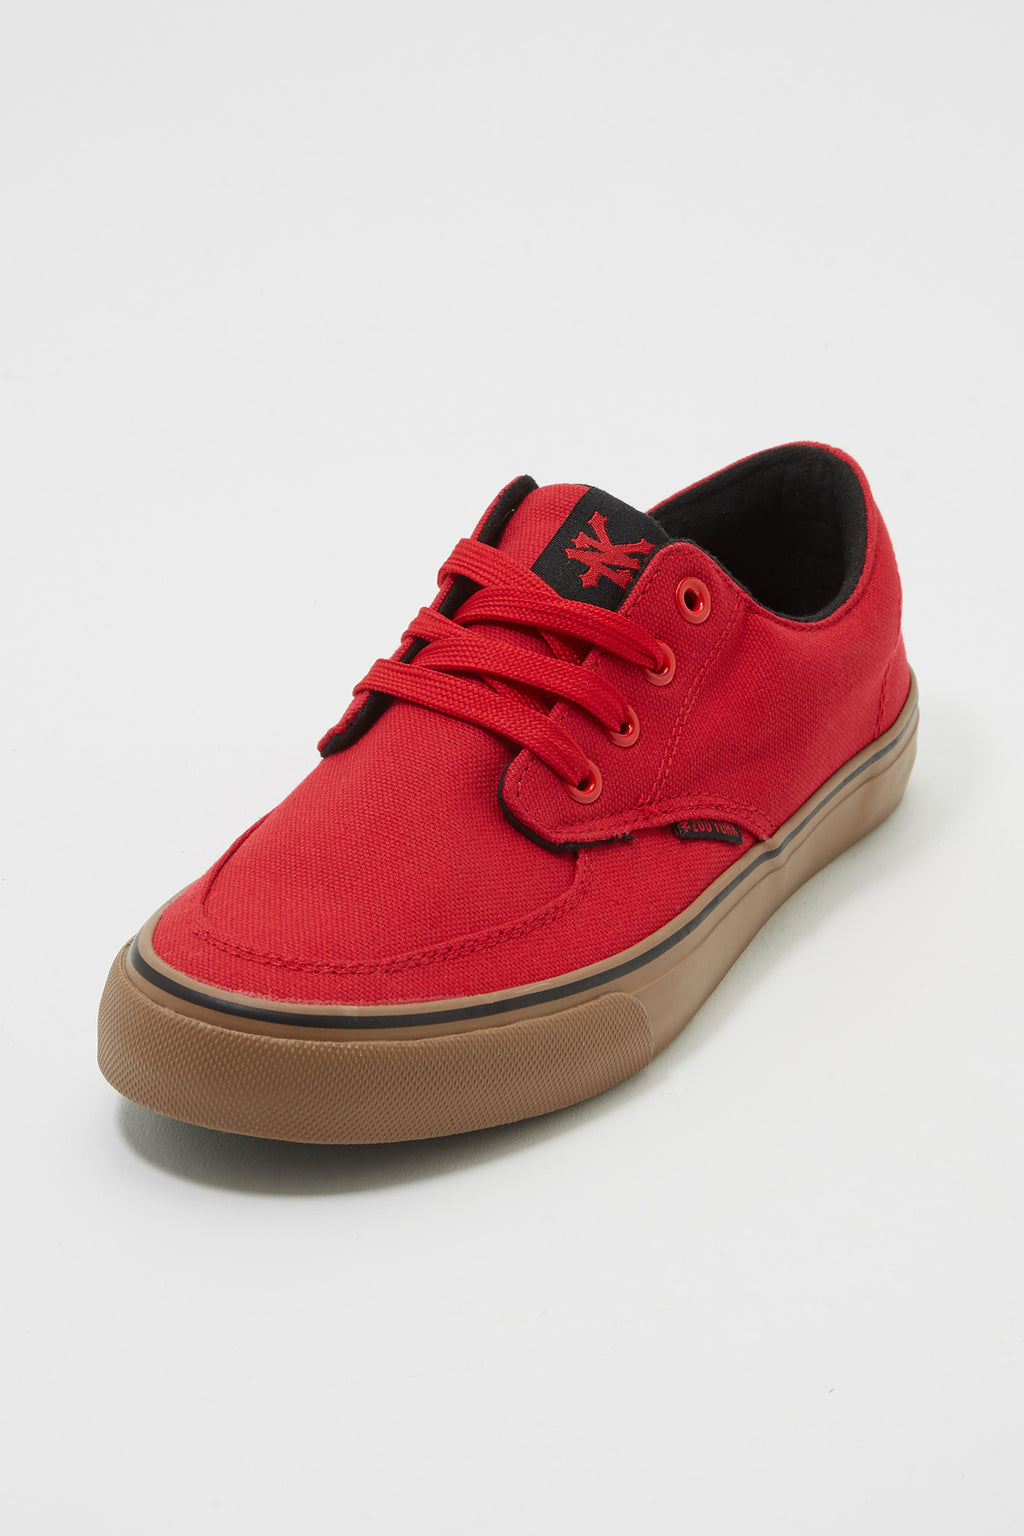 Zoo York Boys Red Ryan Canvas Shoes